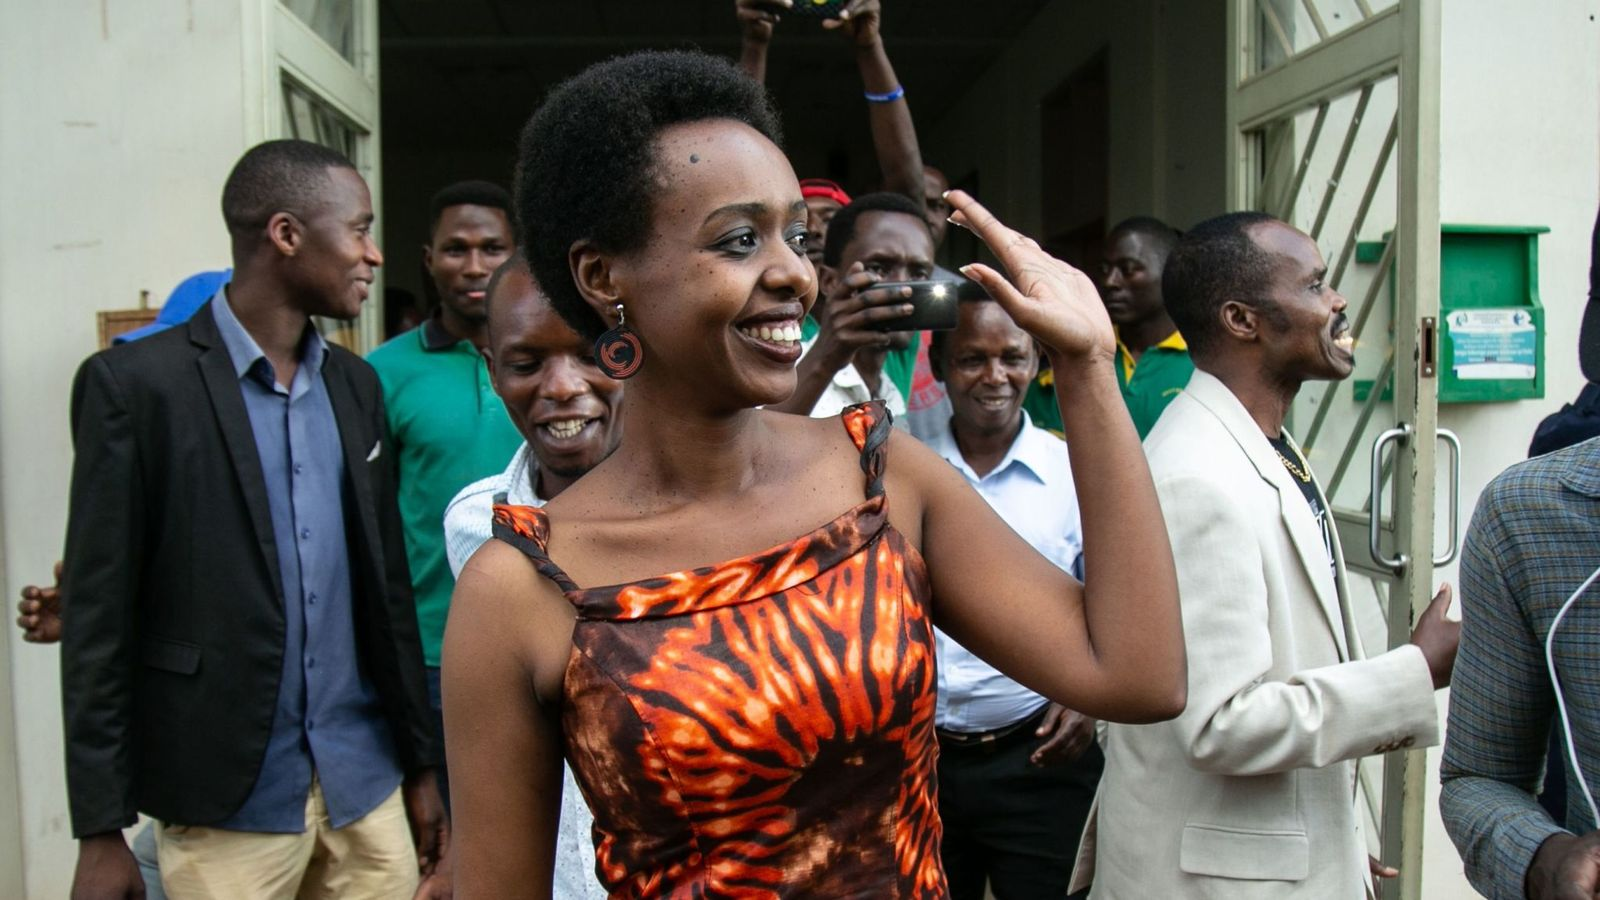 Diane Rwigara: Woman faced 22 years in jail for criticising her government